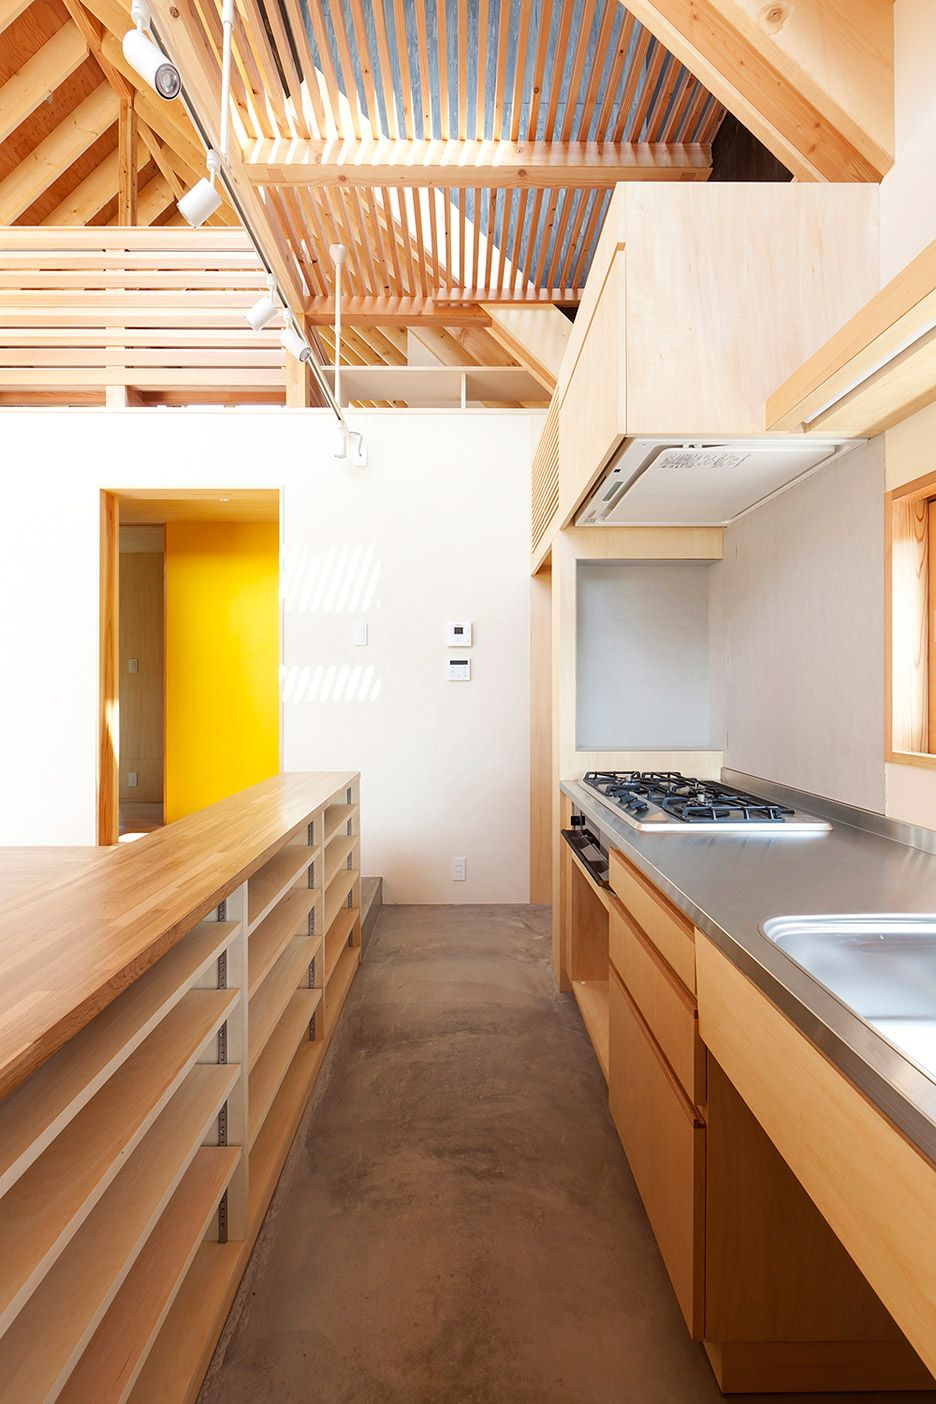 Tailored Design Lab Have Built A House In Rural Japan That Embraces Its Agrarian Setting